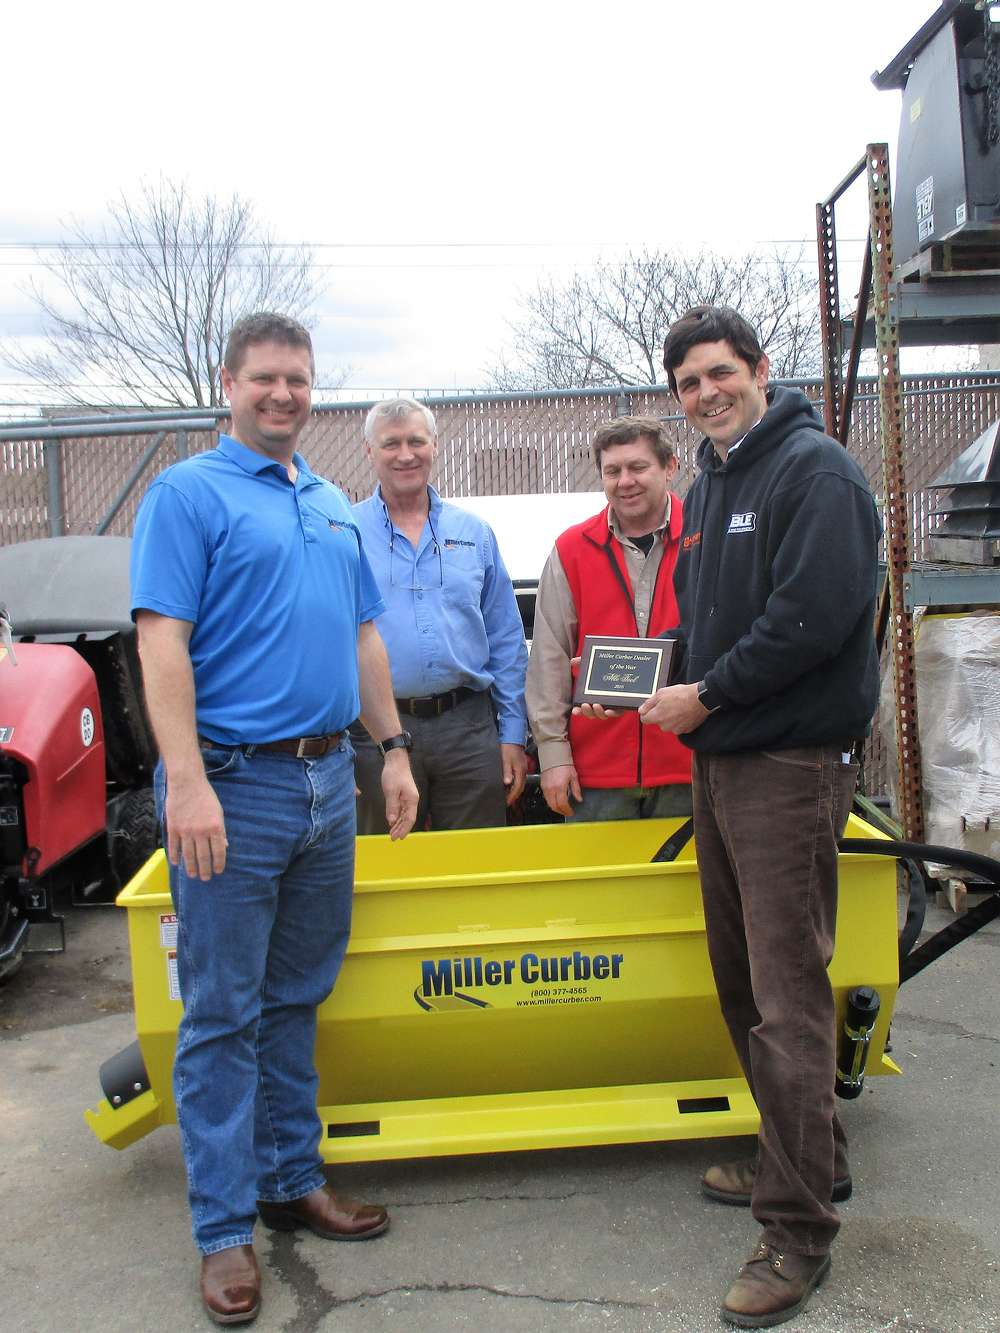 (L-R): Hank Rochette, sales manager of Miller Curber LLC; Randy Best, manufacturing manager of Miller Curber LLC; Ron Barnas; and Derek Bauer, owner of Able Tool & Equipment.